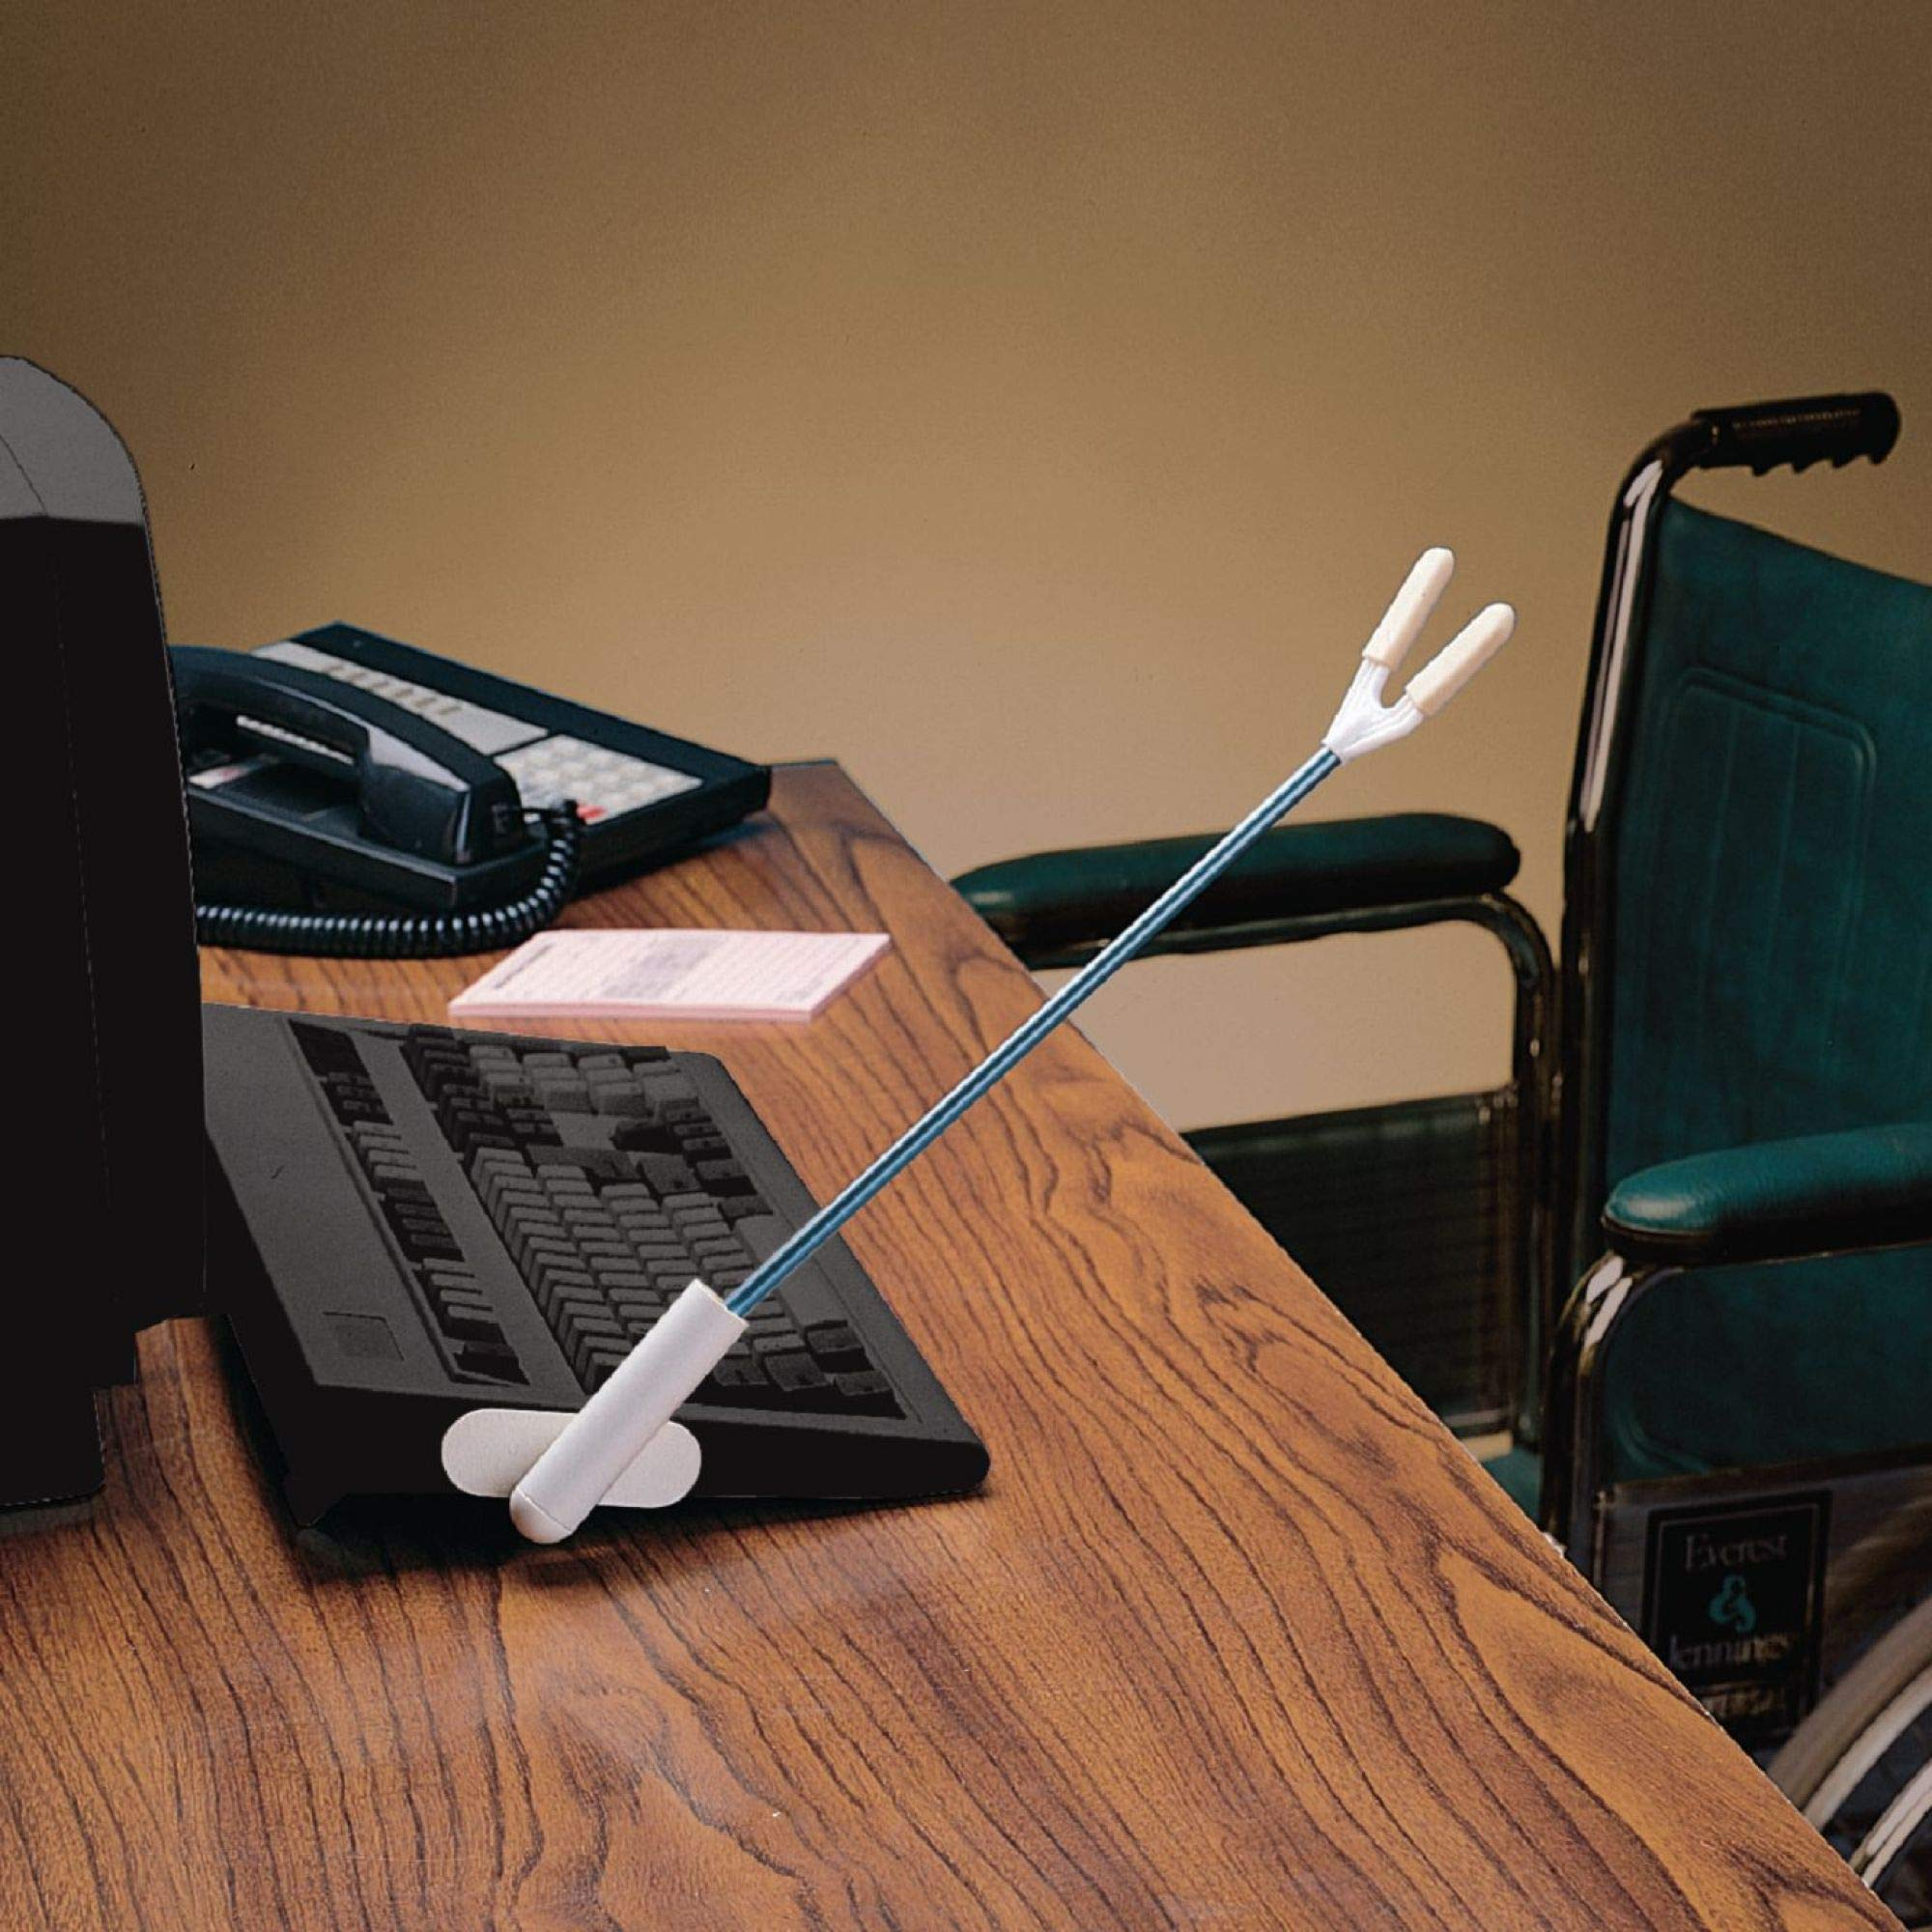 Swivel Mouth Stick Docking Station by Mouthstick